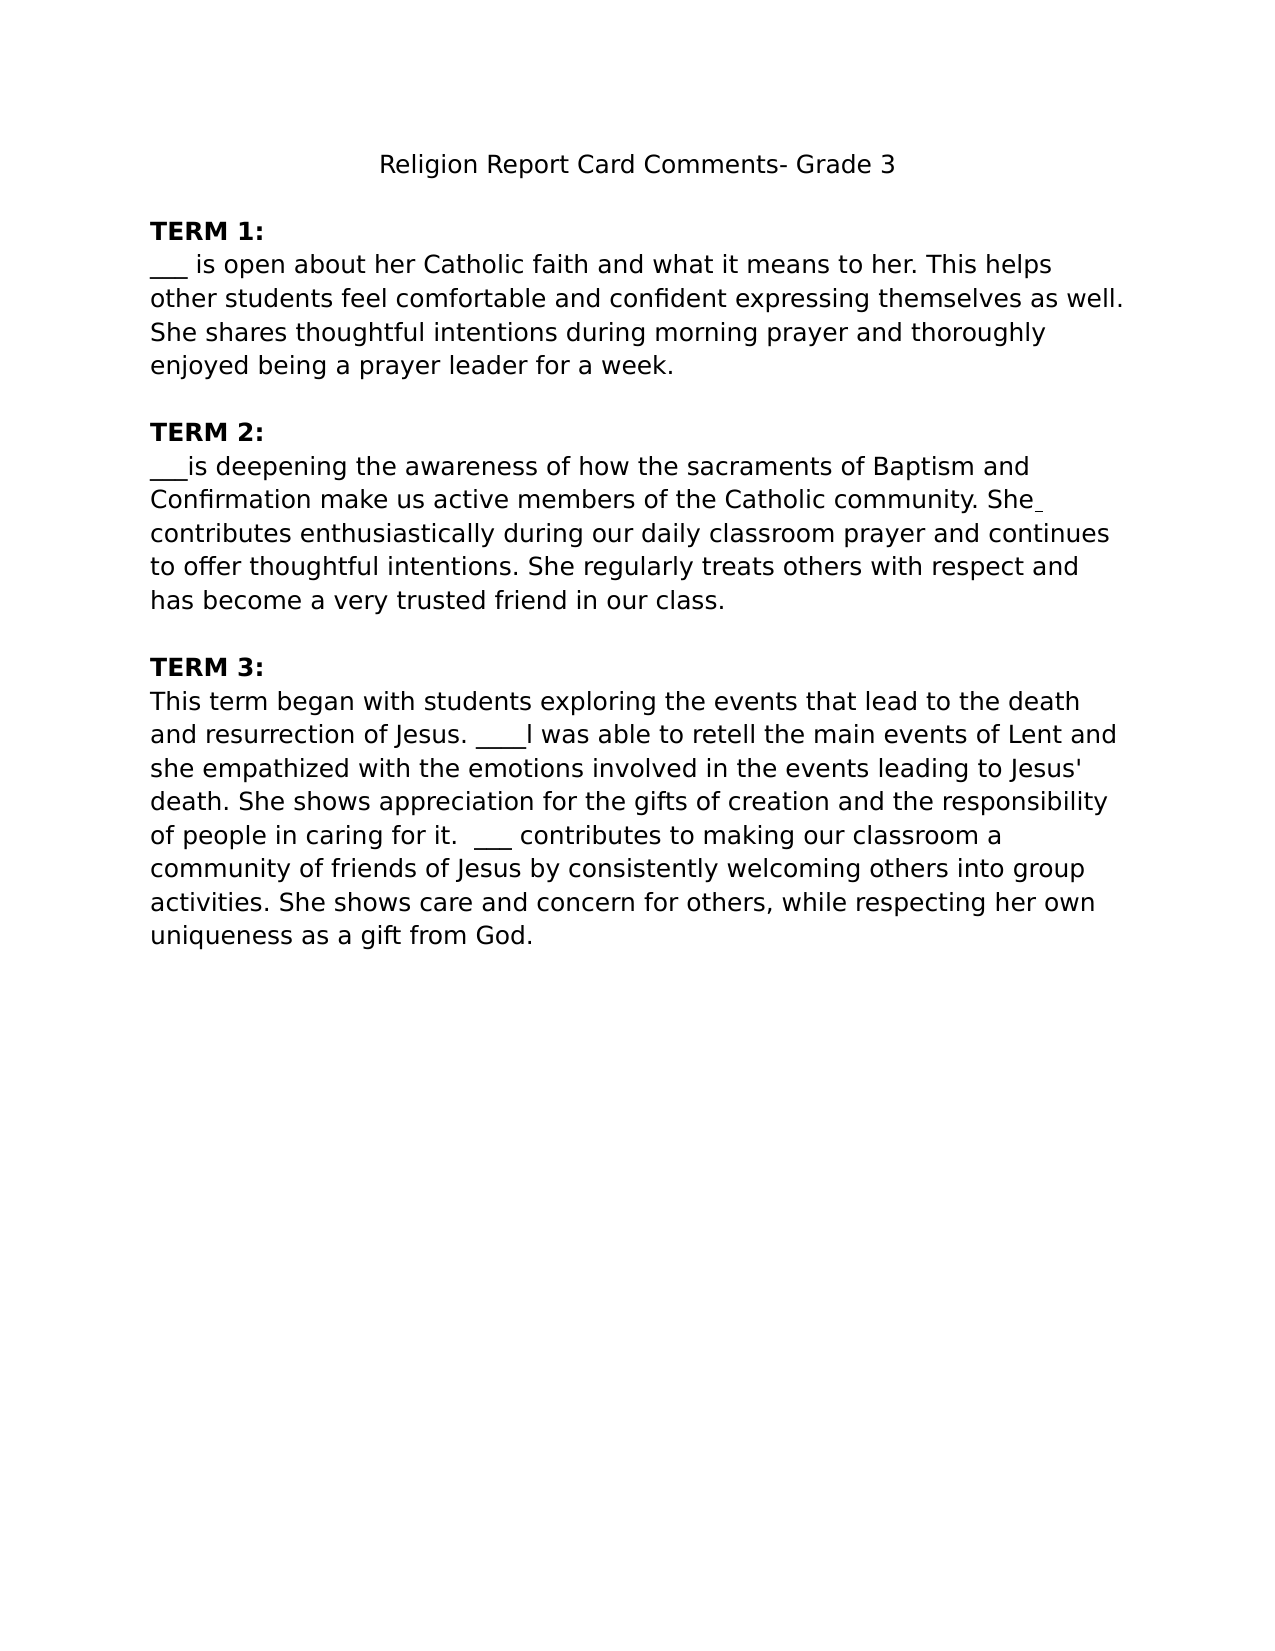 Religion Report Card Comments Resource Preview